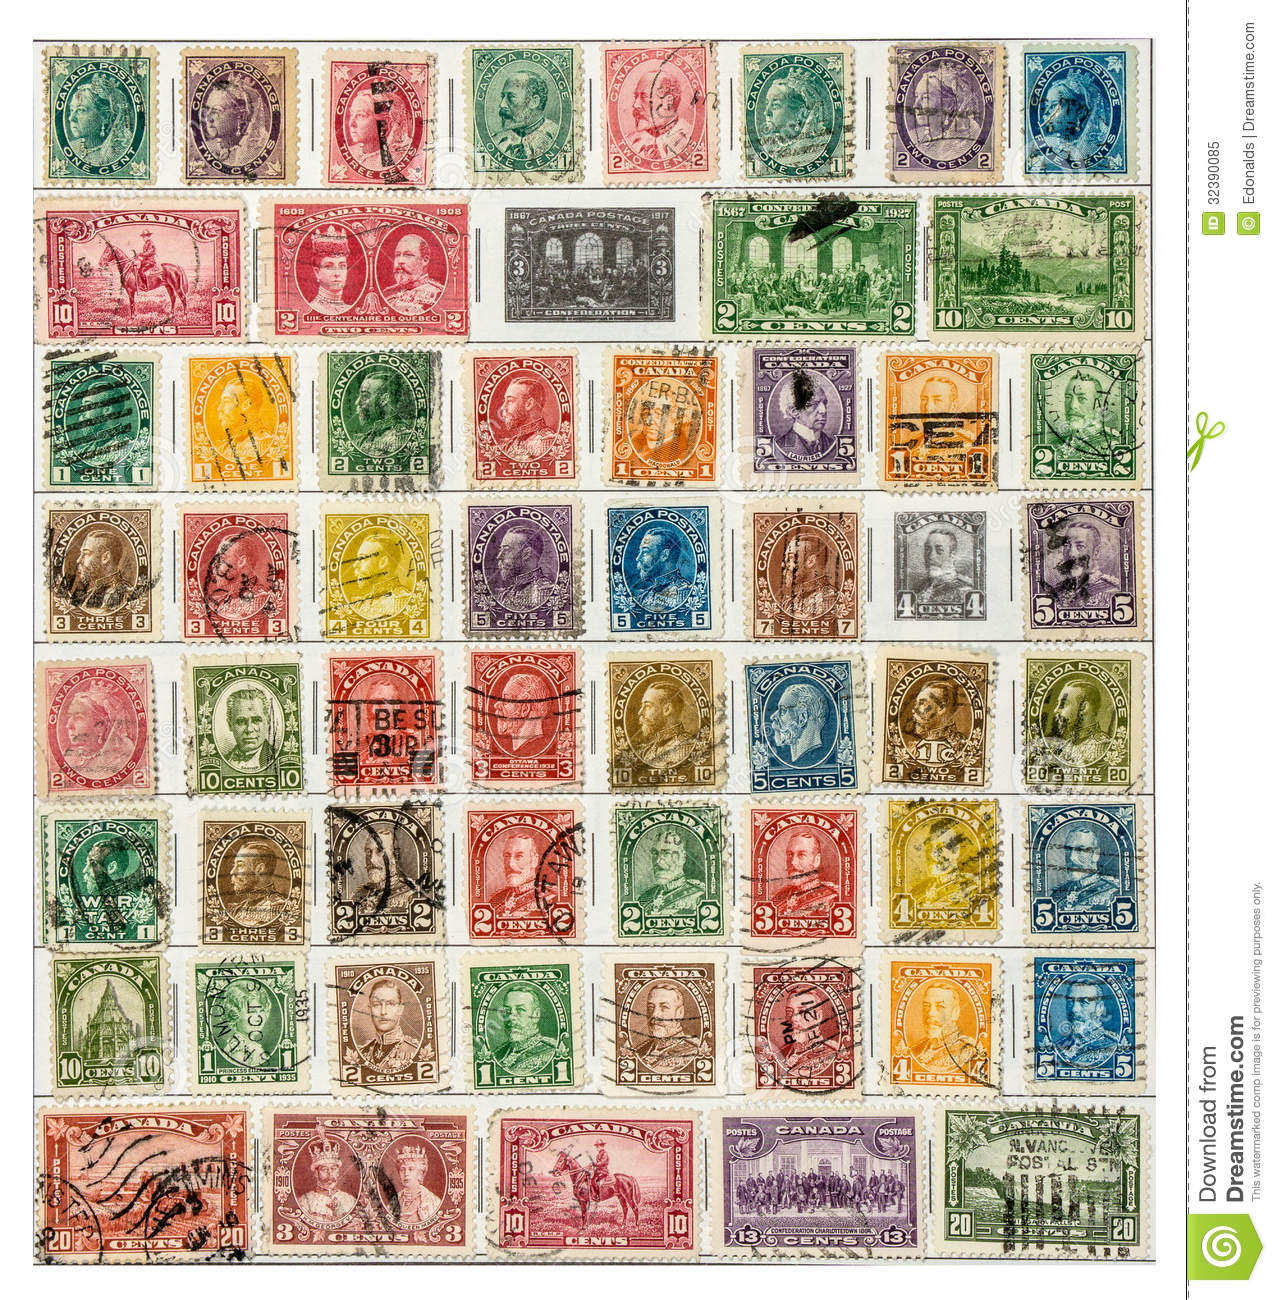 Page from a stamp collection of early Canadian postage stamps.